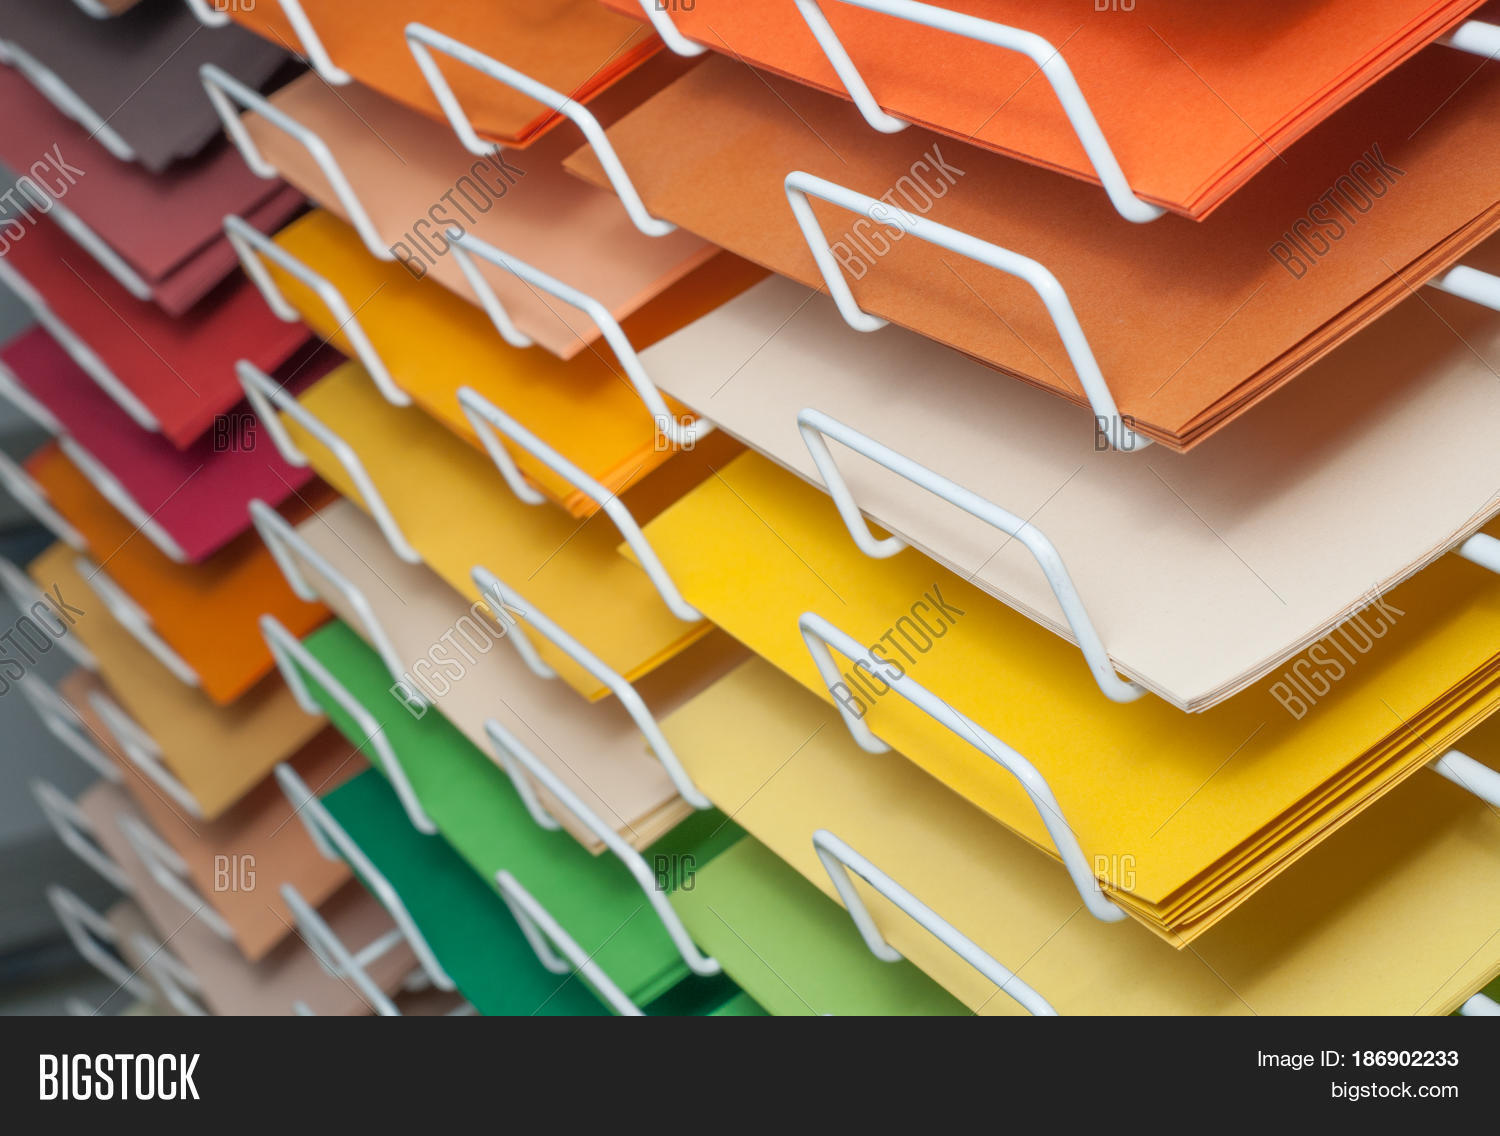 Sheets Colored Image & Photo (Free Trial) | Bigstock